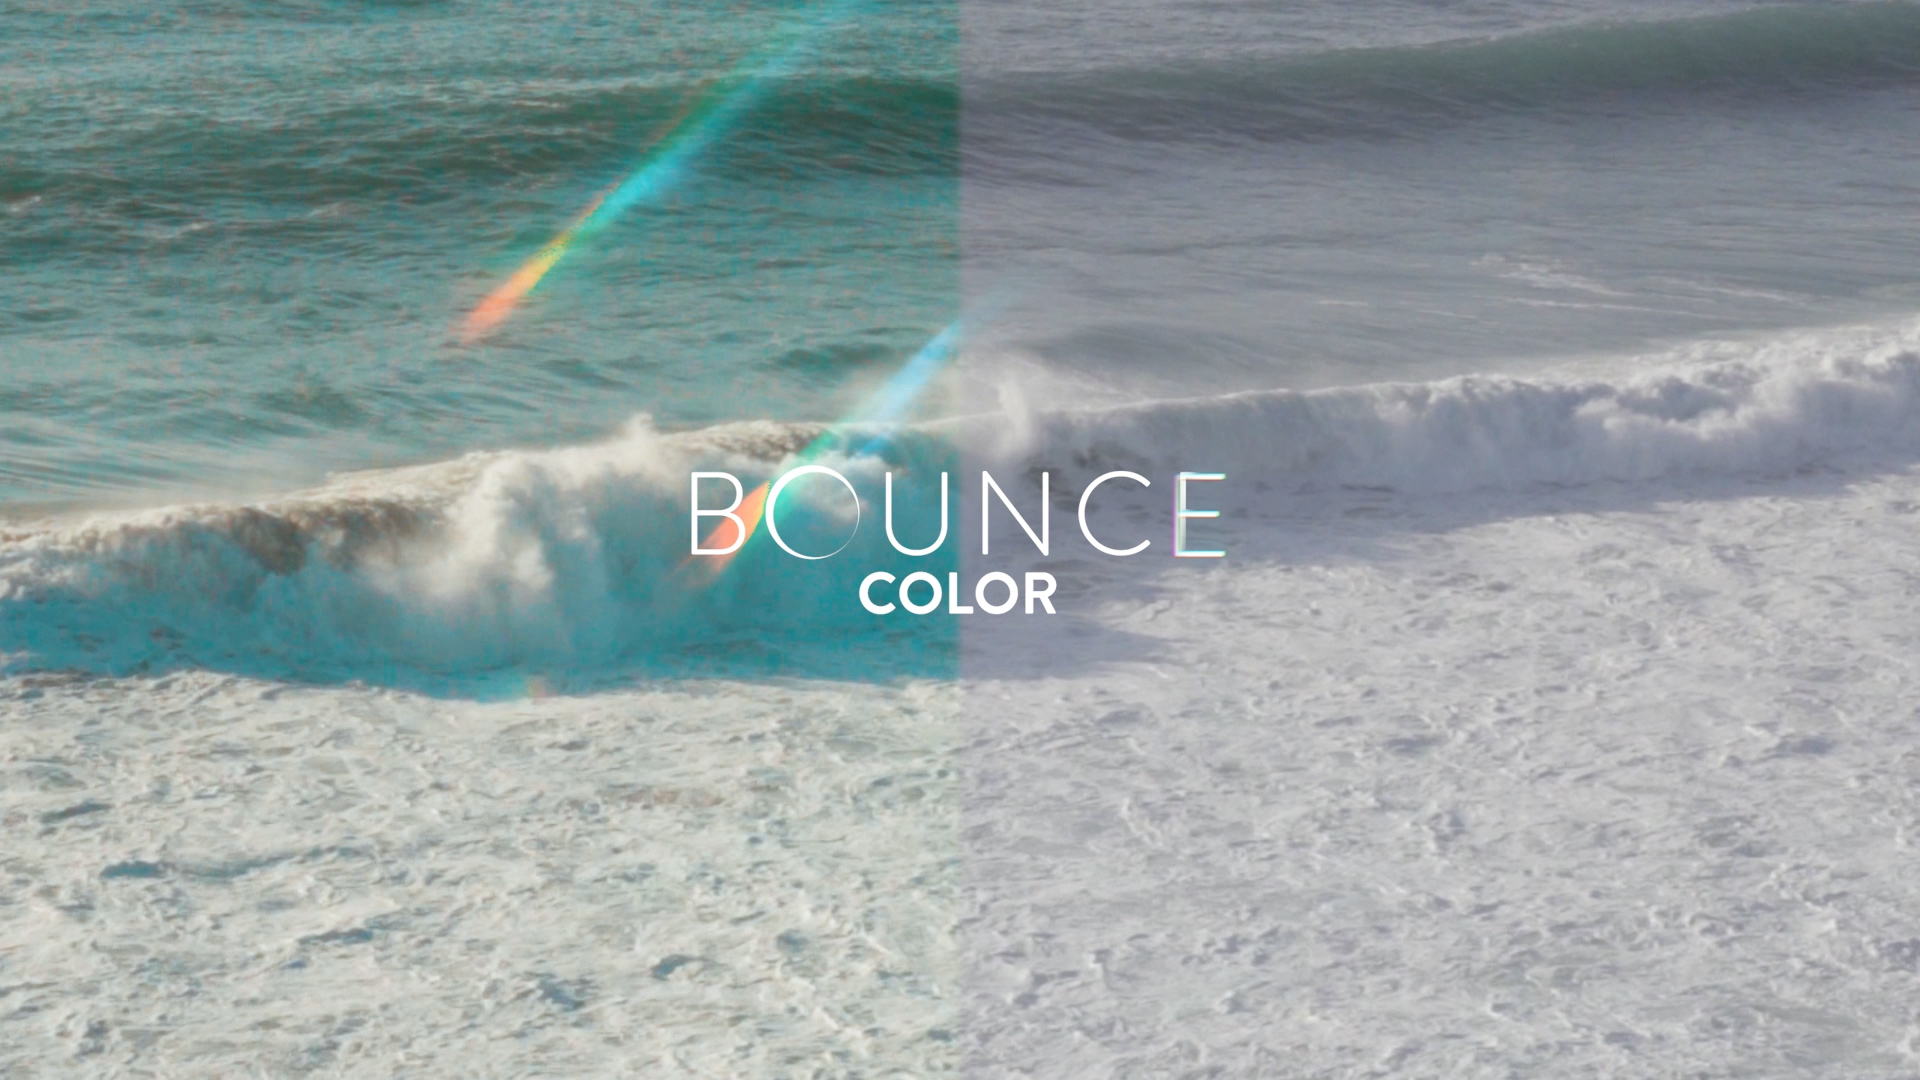 Bounce Color Film LUTs